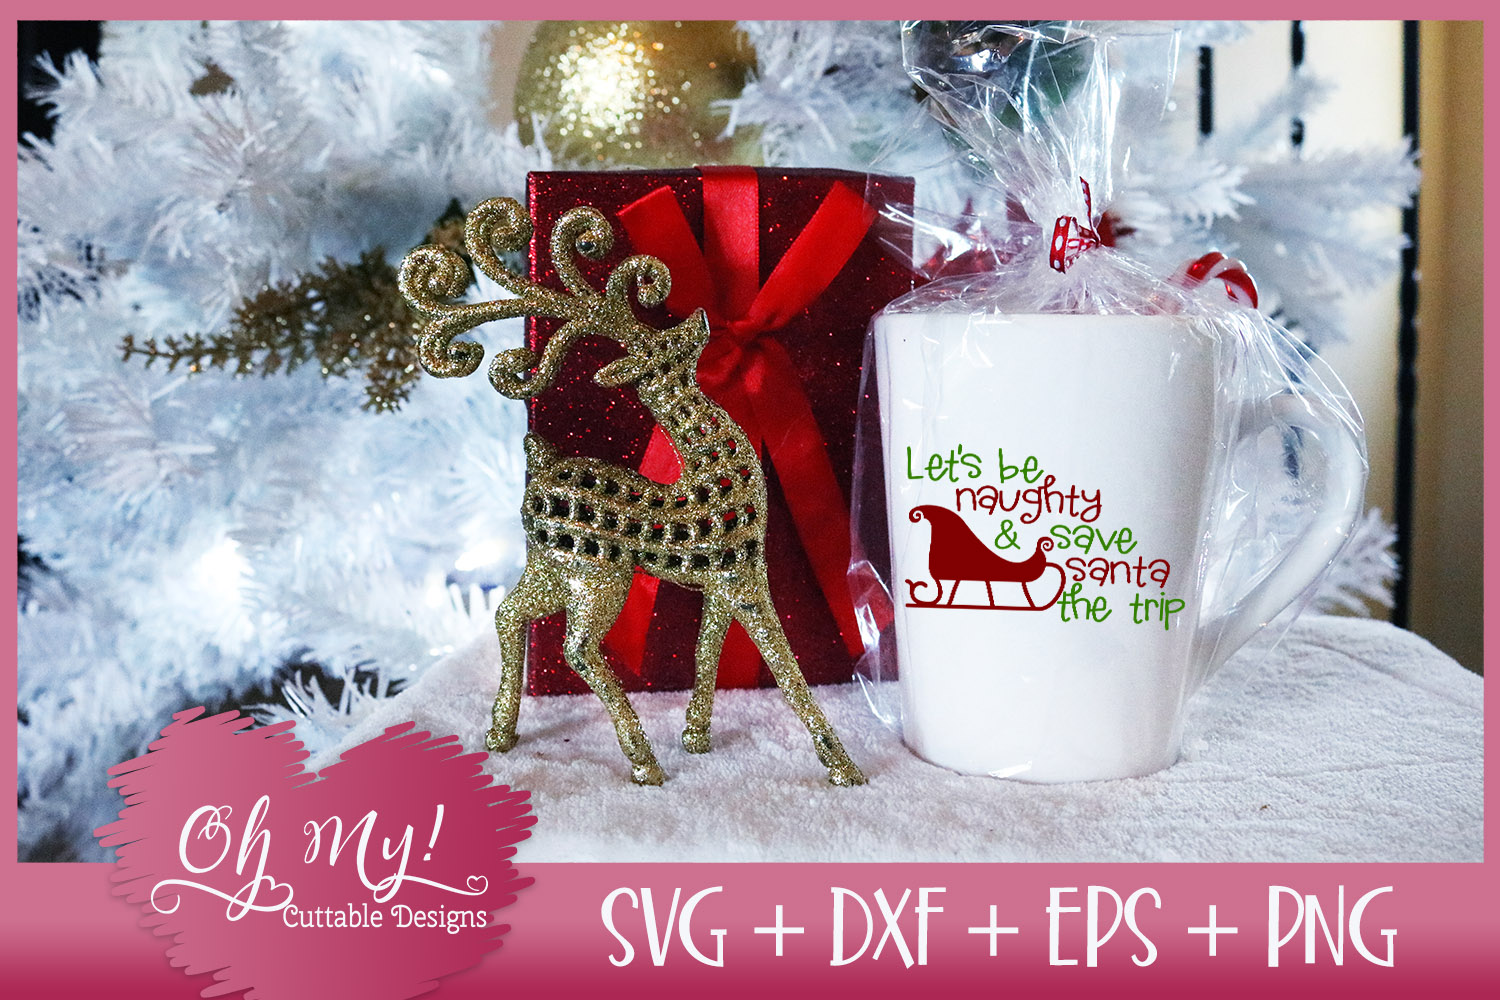 Let's Be Naughty and Save Santa The Trip - SVG EPS DXF PNG example image 4